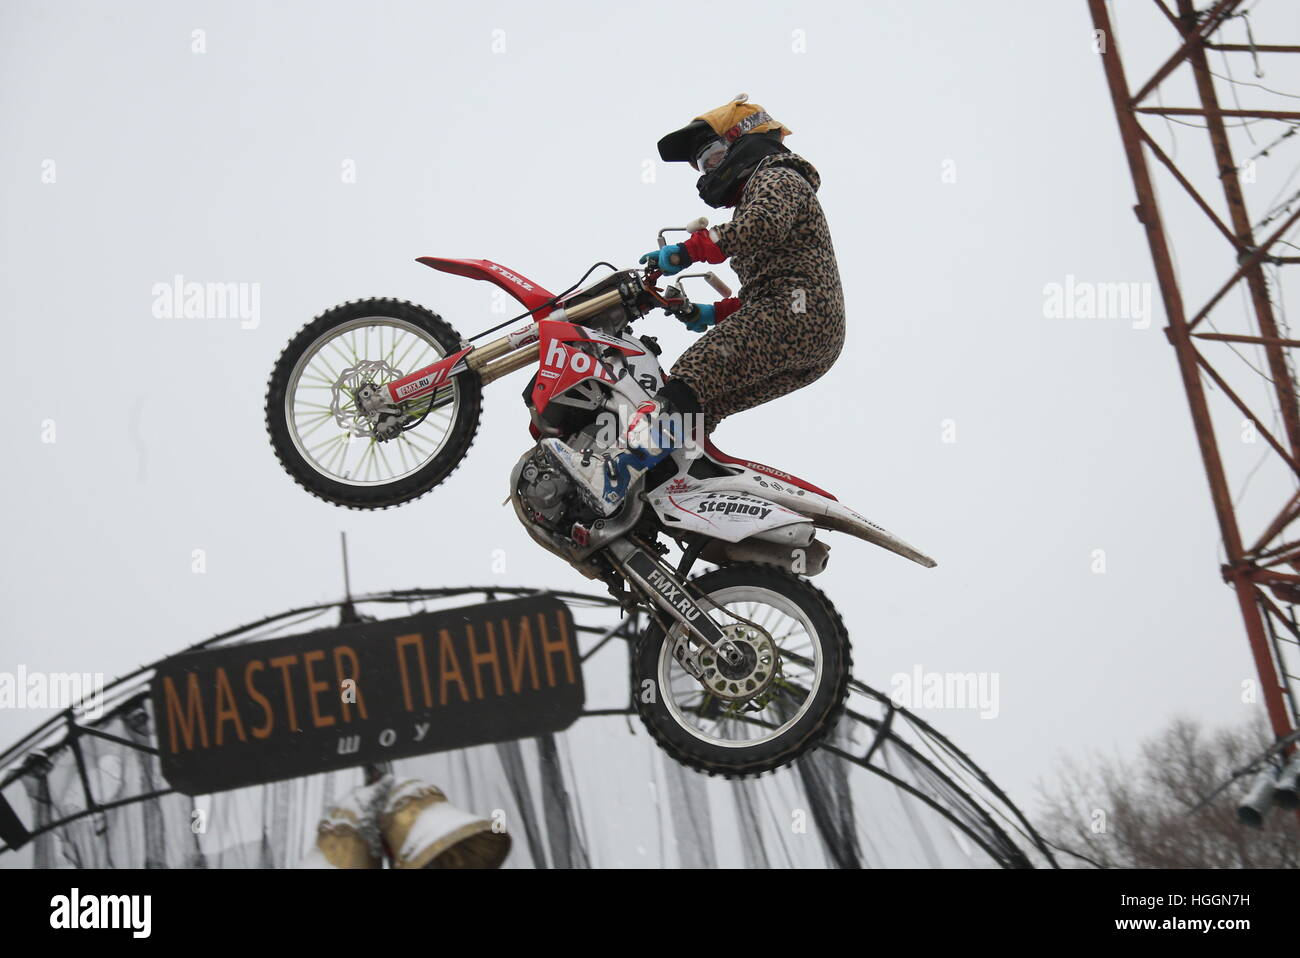 Moscow, Russia. 5th Jan, 2017. A stuntman seen during a New Year performance. © Artyom Korotayev/TASS/Alamy - Stock Image